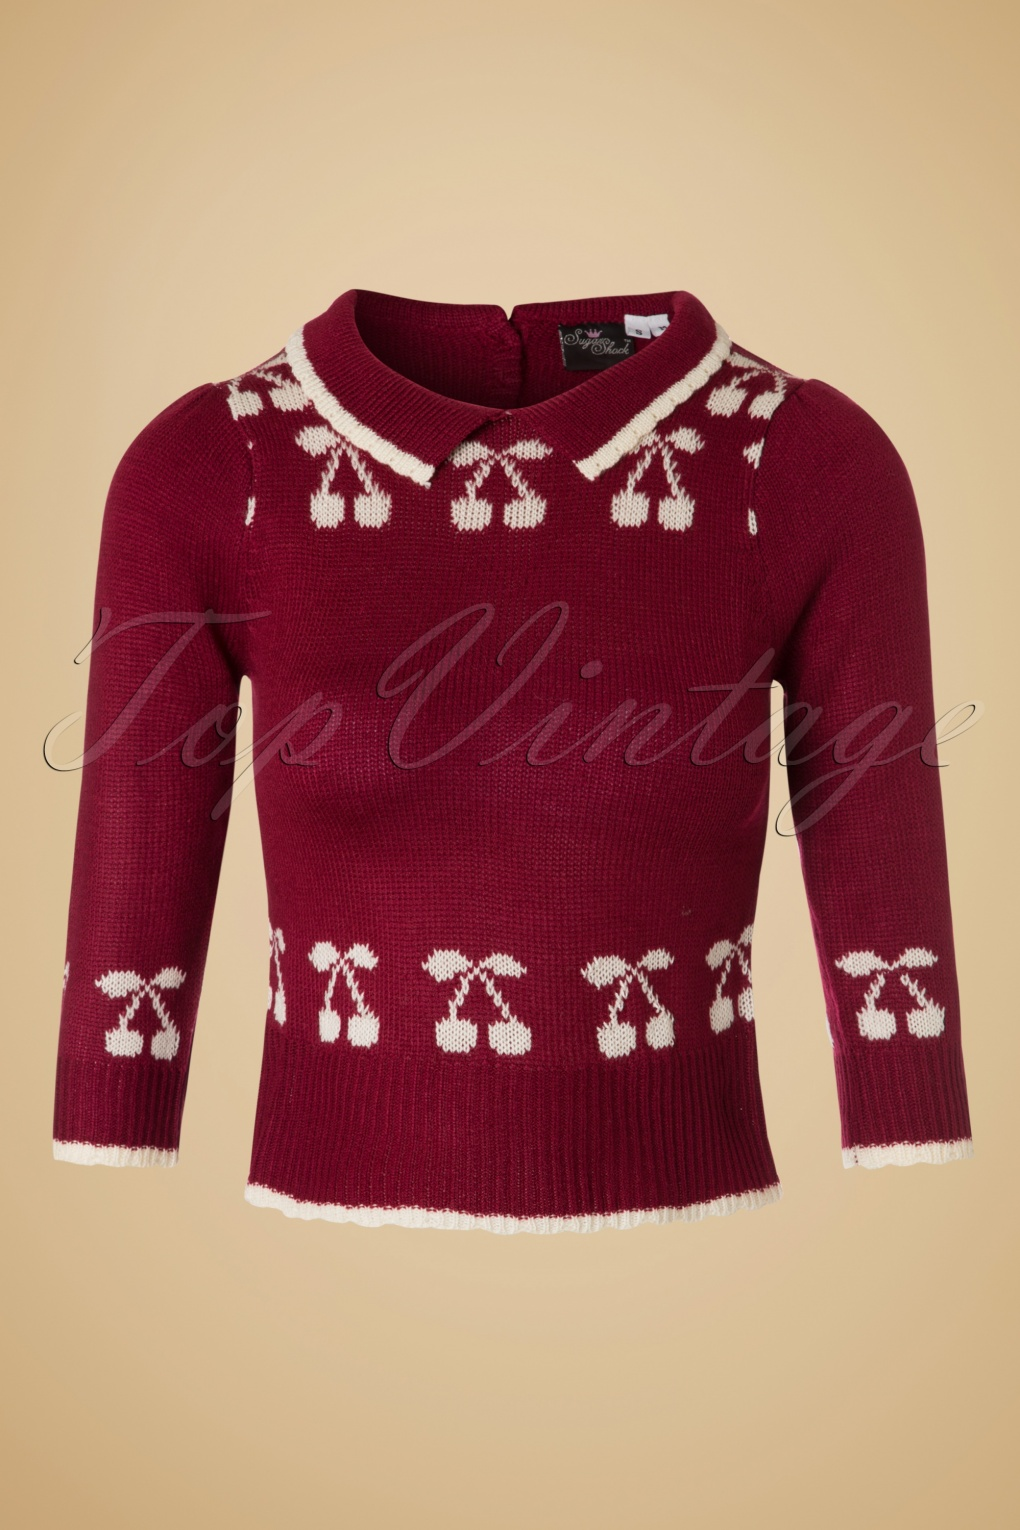 Vintage Sweaters: Cable Knit, Fair Isle Cardigans & Sweaters 40s Kelsey Cherry Jumper in Wine Red £35.51 AT vintagedancer.com